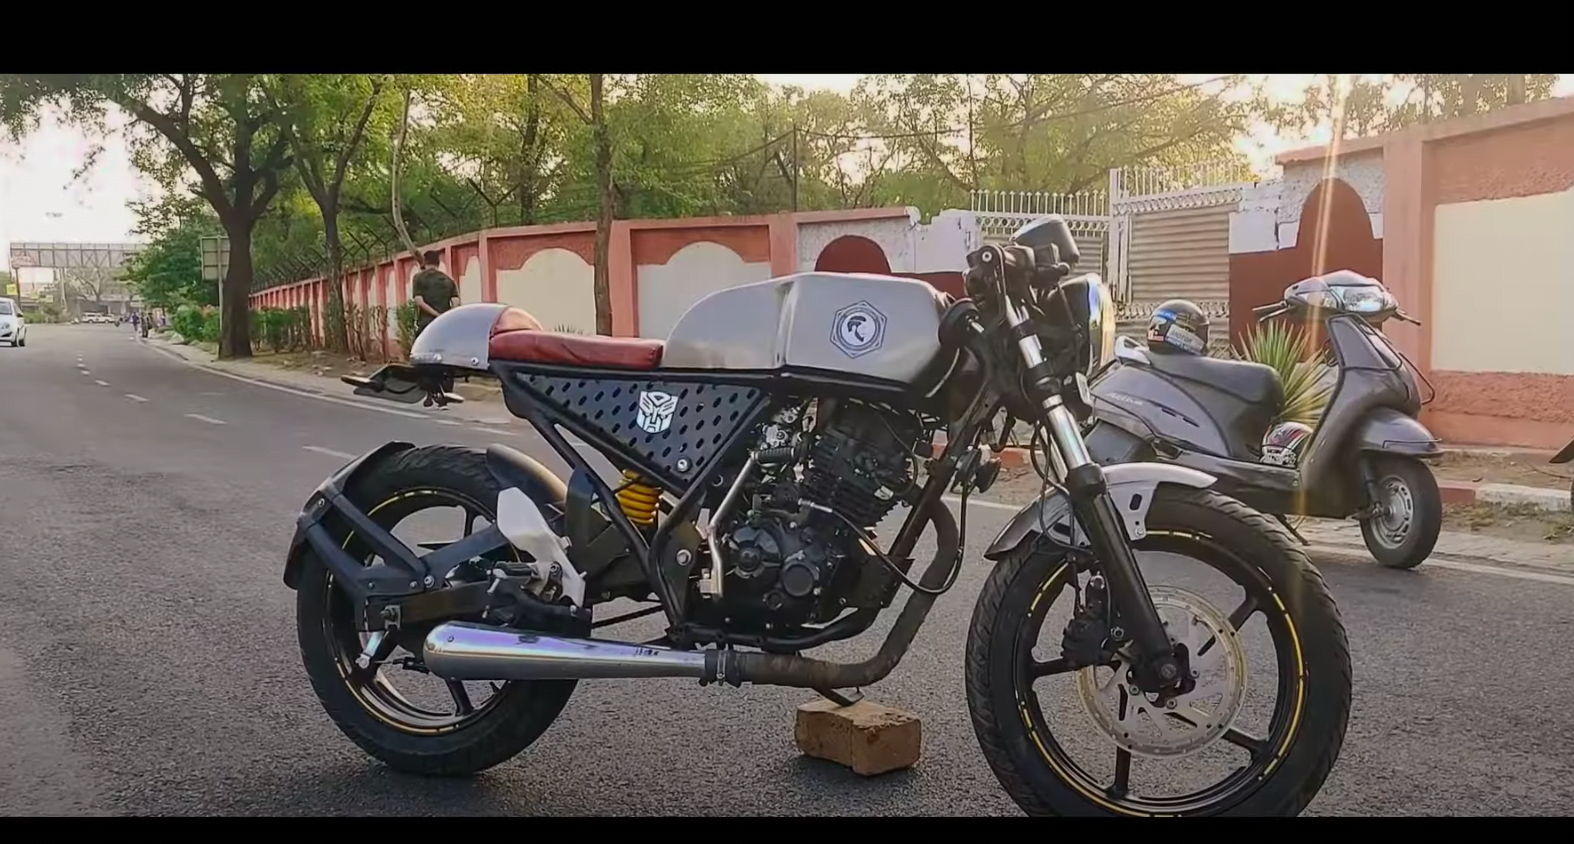 Bajaj Discover Modified Into A Cafe Racer Like Royal Enfield Continental